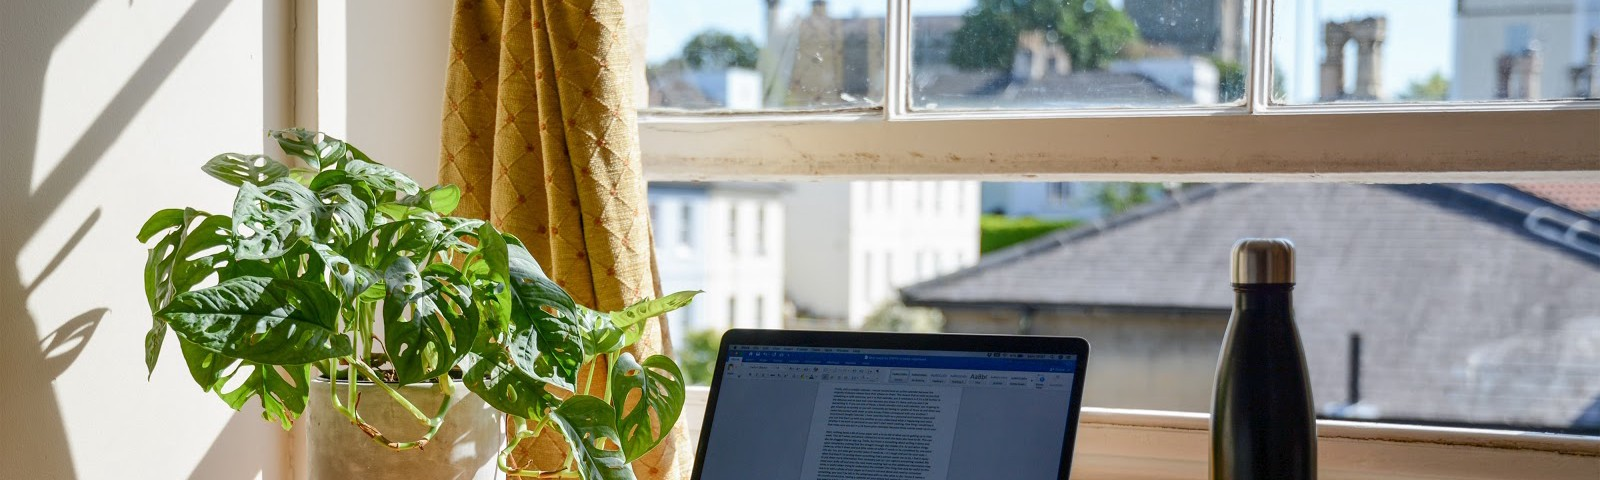 Open Window workspace on a sunny day